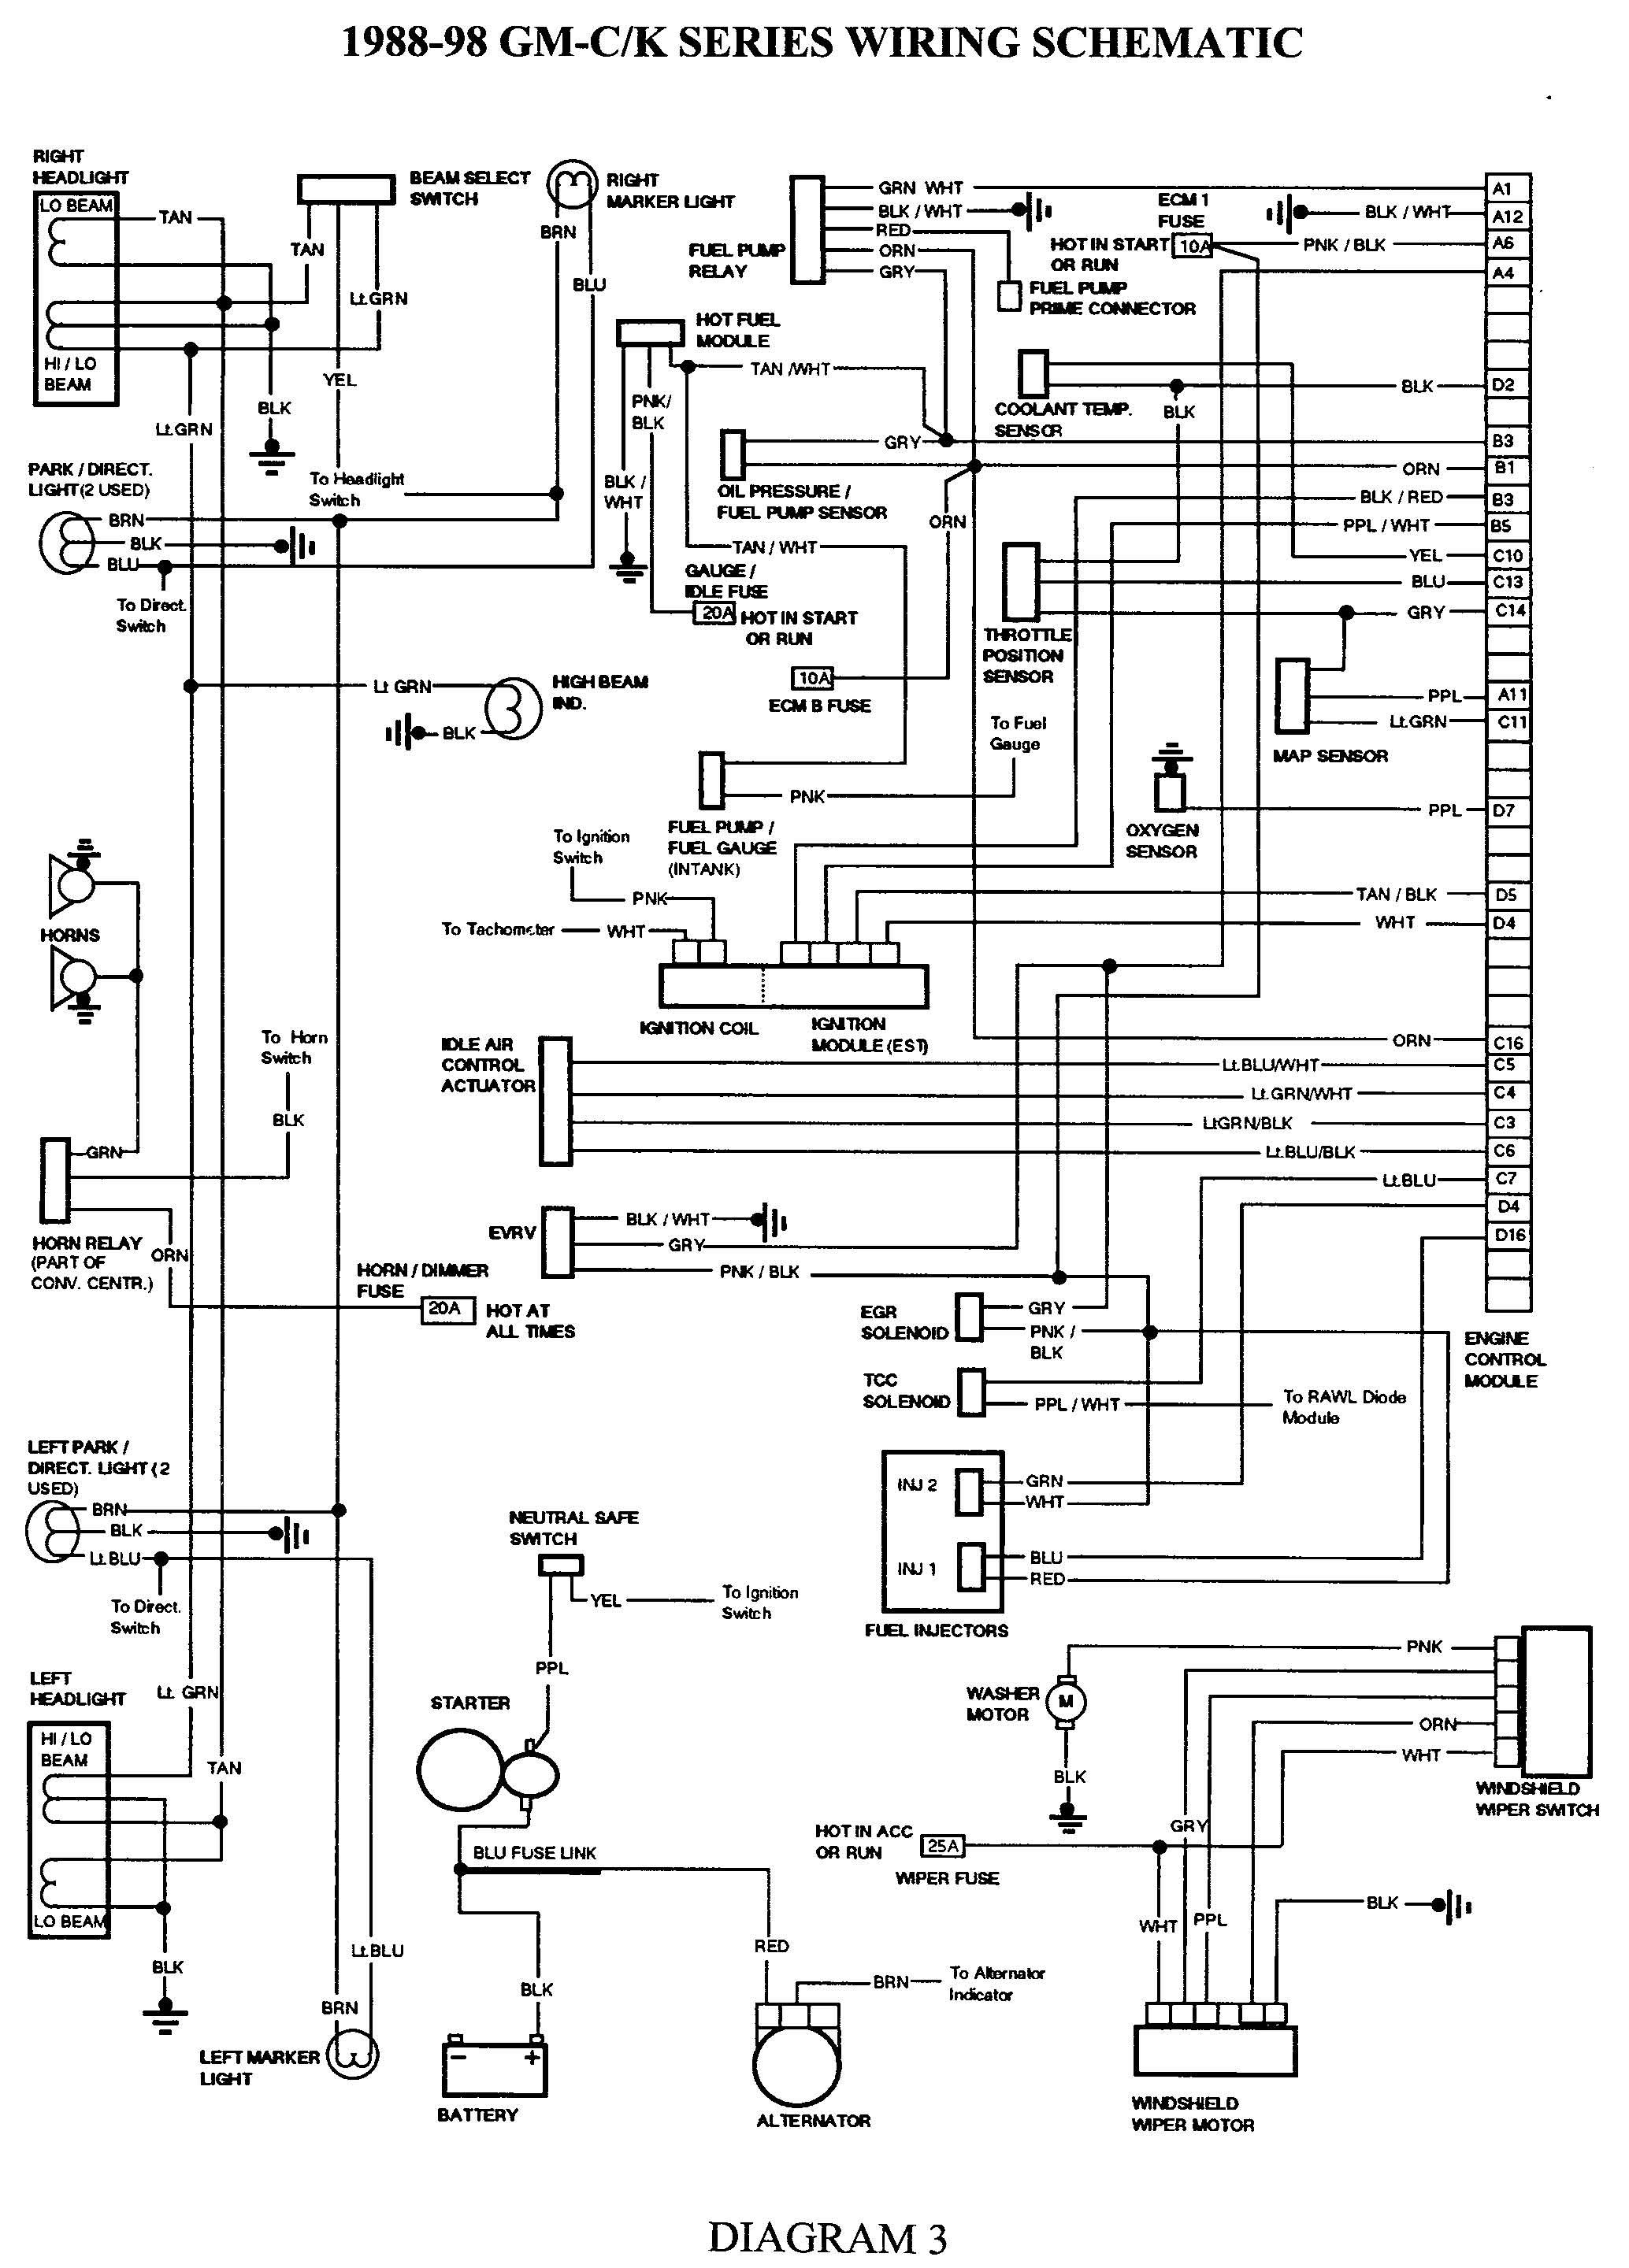 gmc truck wiring diagrams on gm wiring harness diagram 88 98 kc rh pinterest com wiring harness for 1971 gmc truck wiring harness for 1971 gmc truck